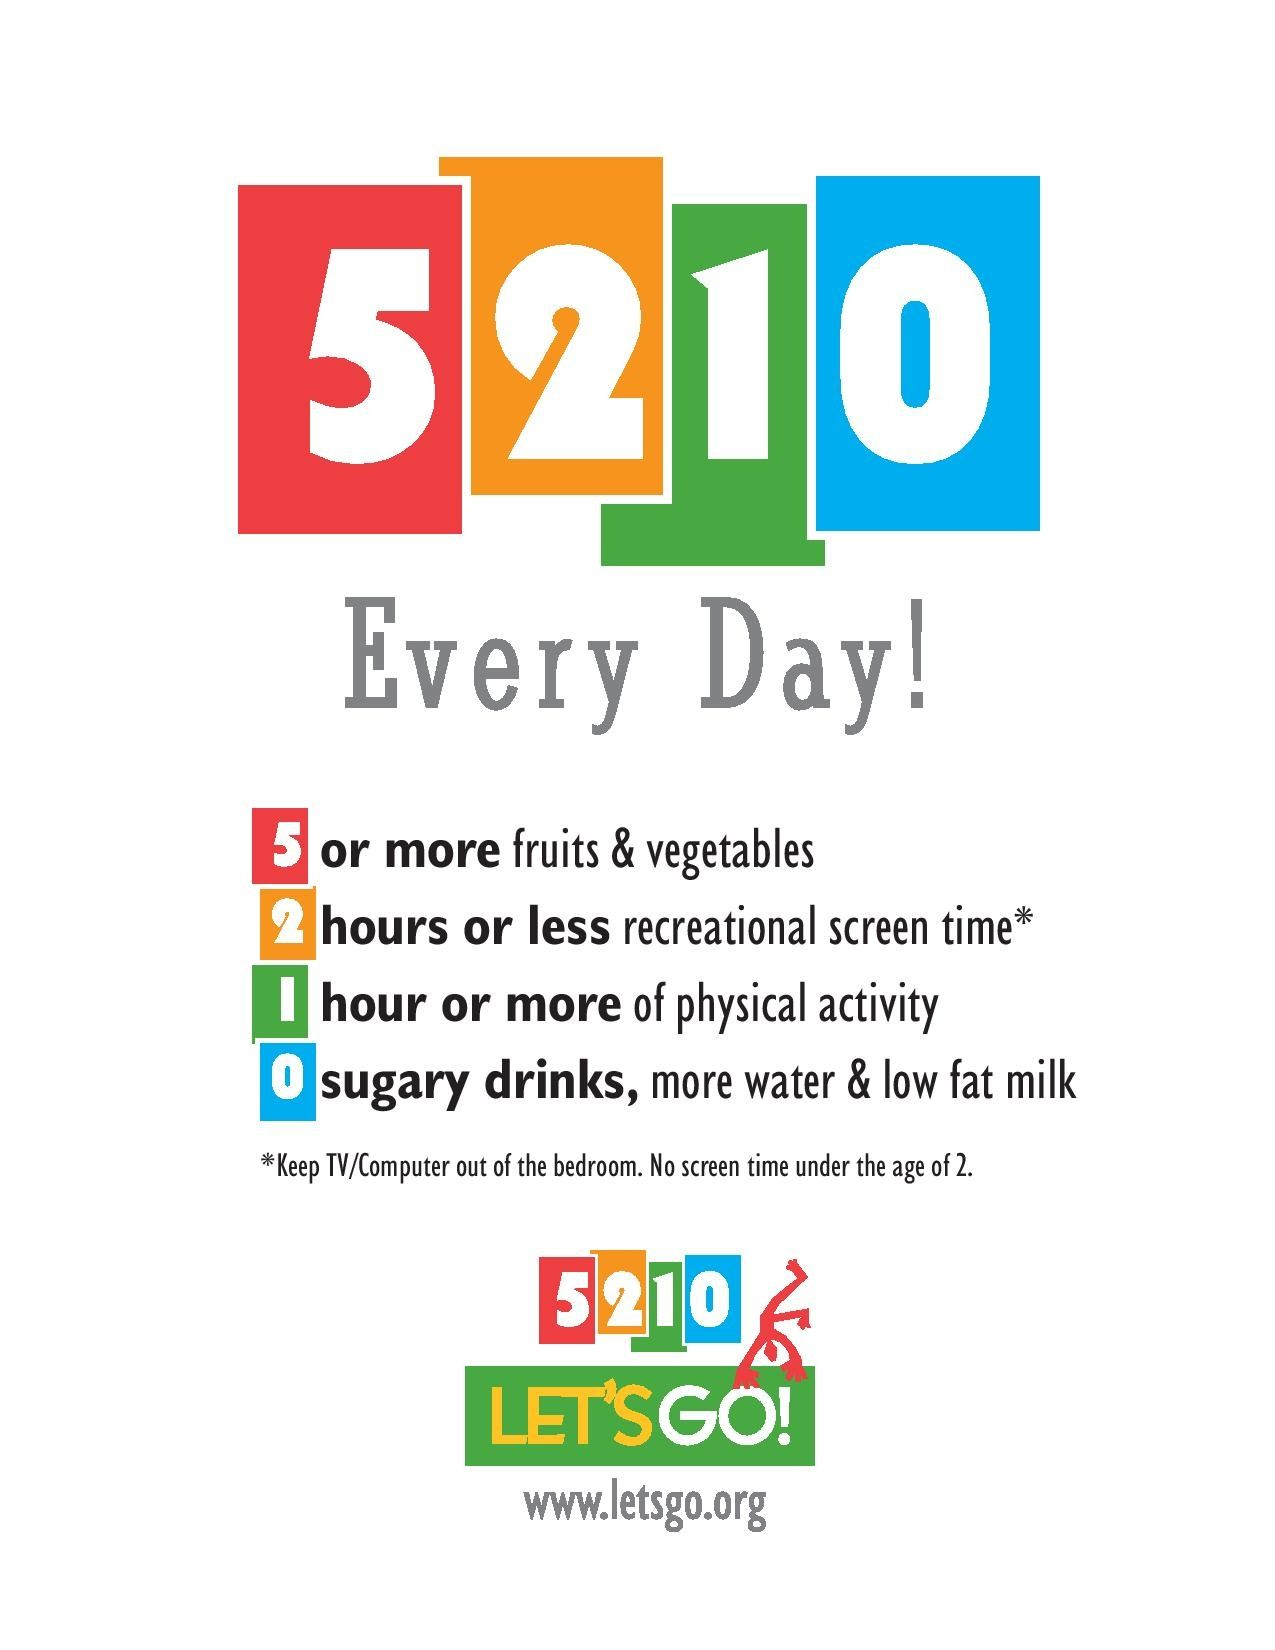 Remember 5210 to help children live a healthier